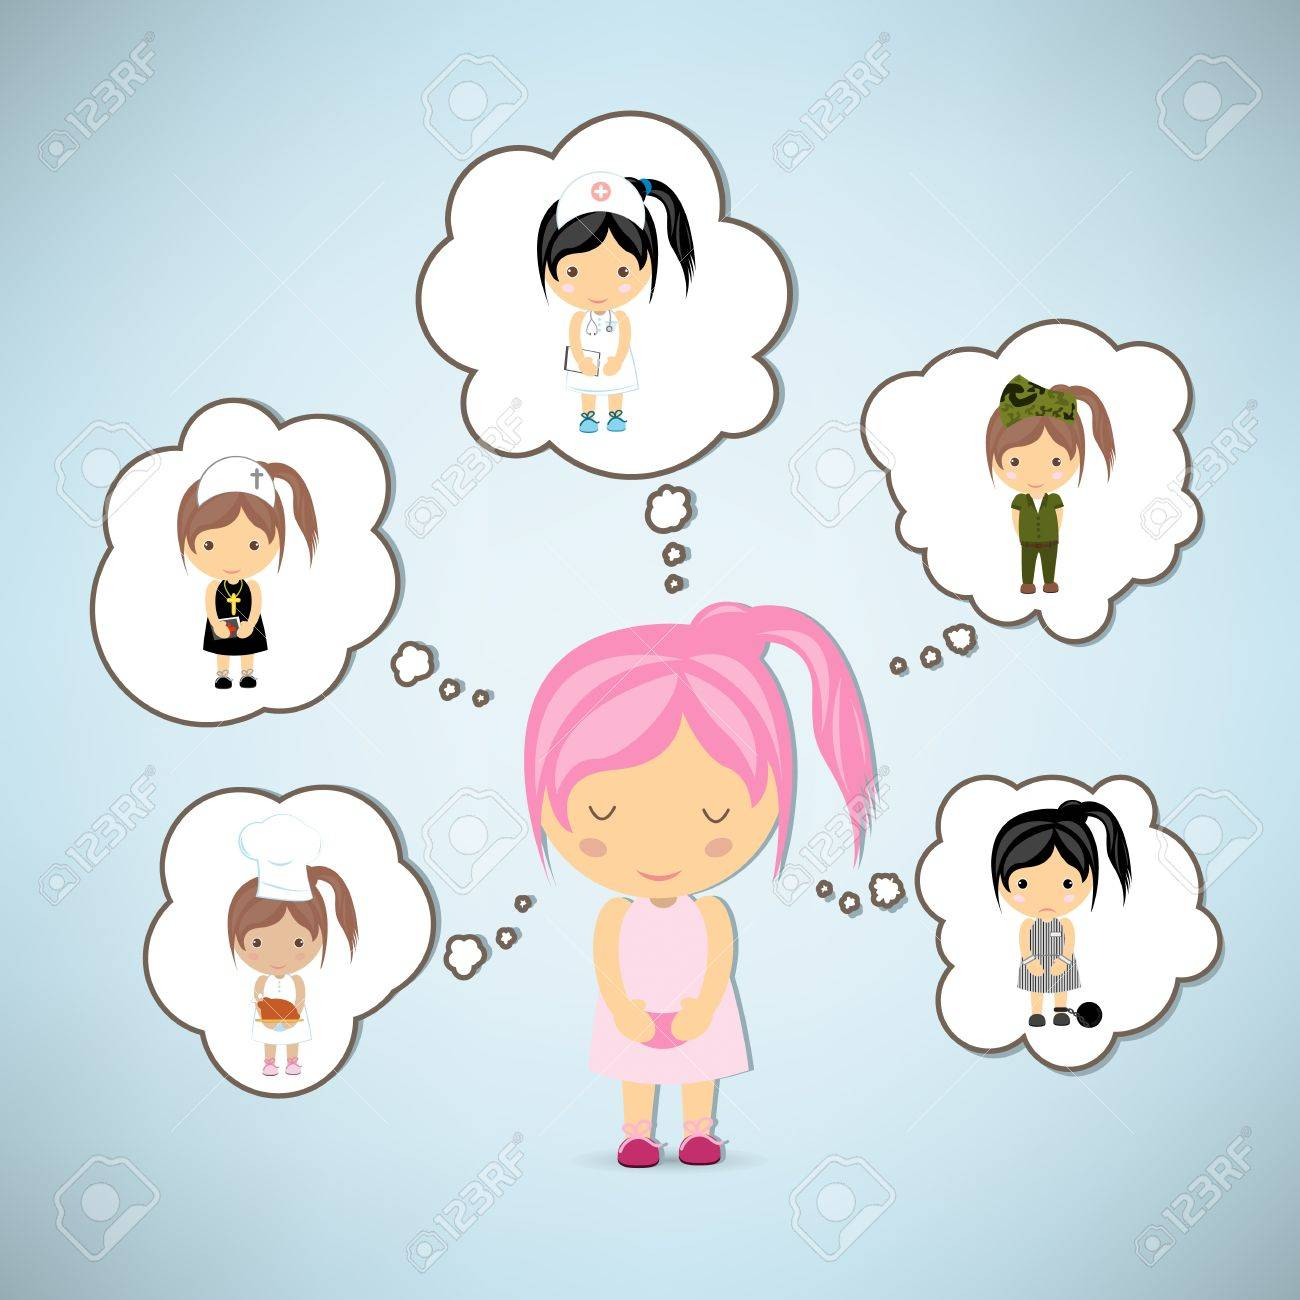 mary lourd my dream my future i m dreaming for my future because i want when i grow up i have already my work so that if i will have mt own family i can give then a better life